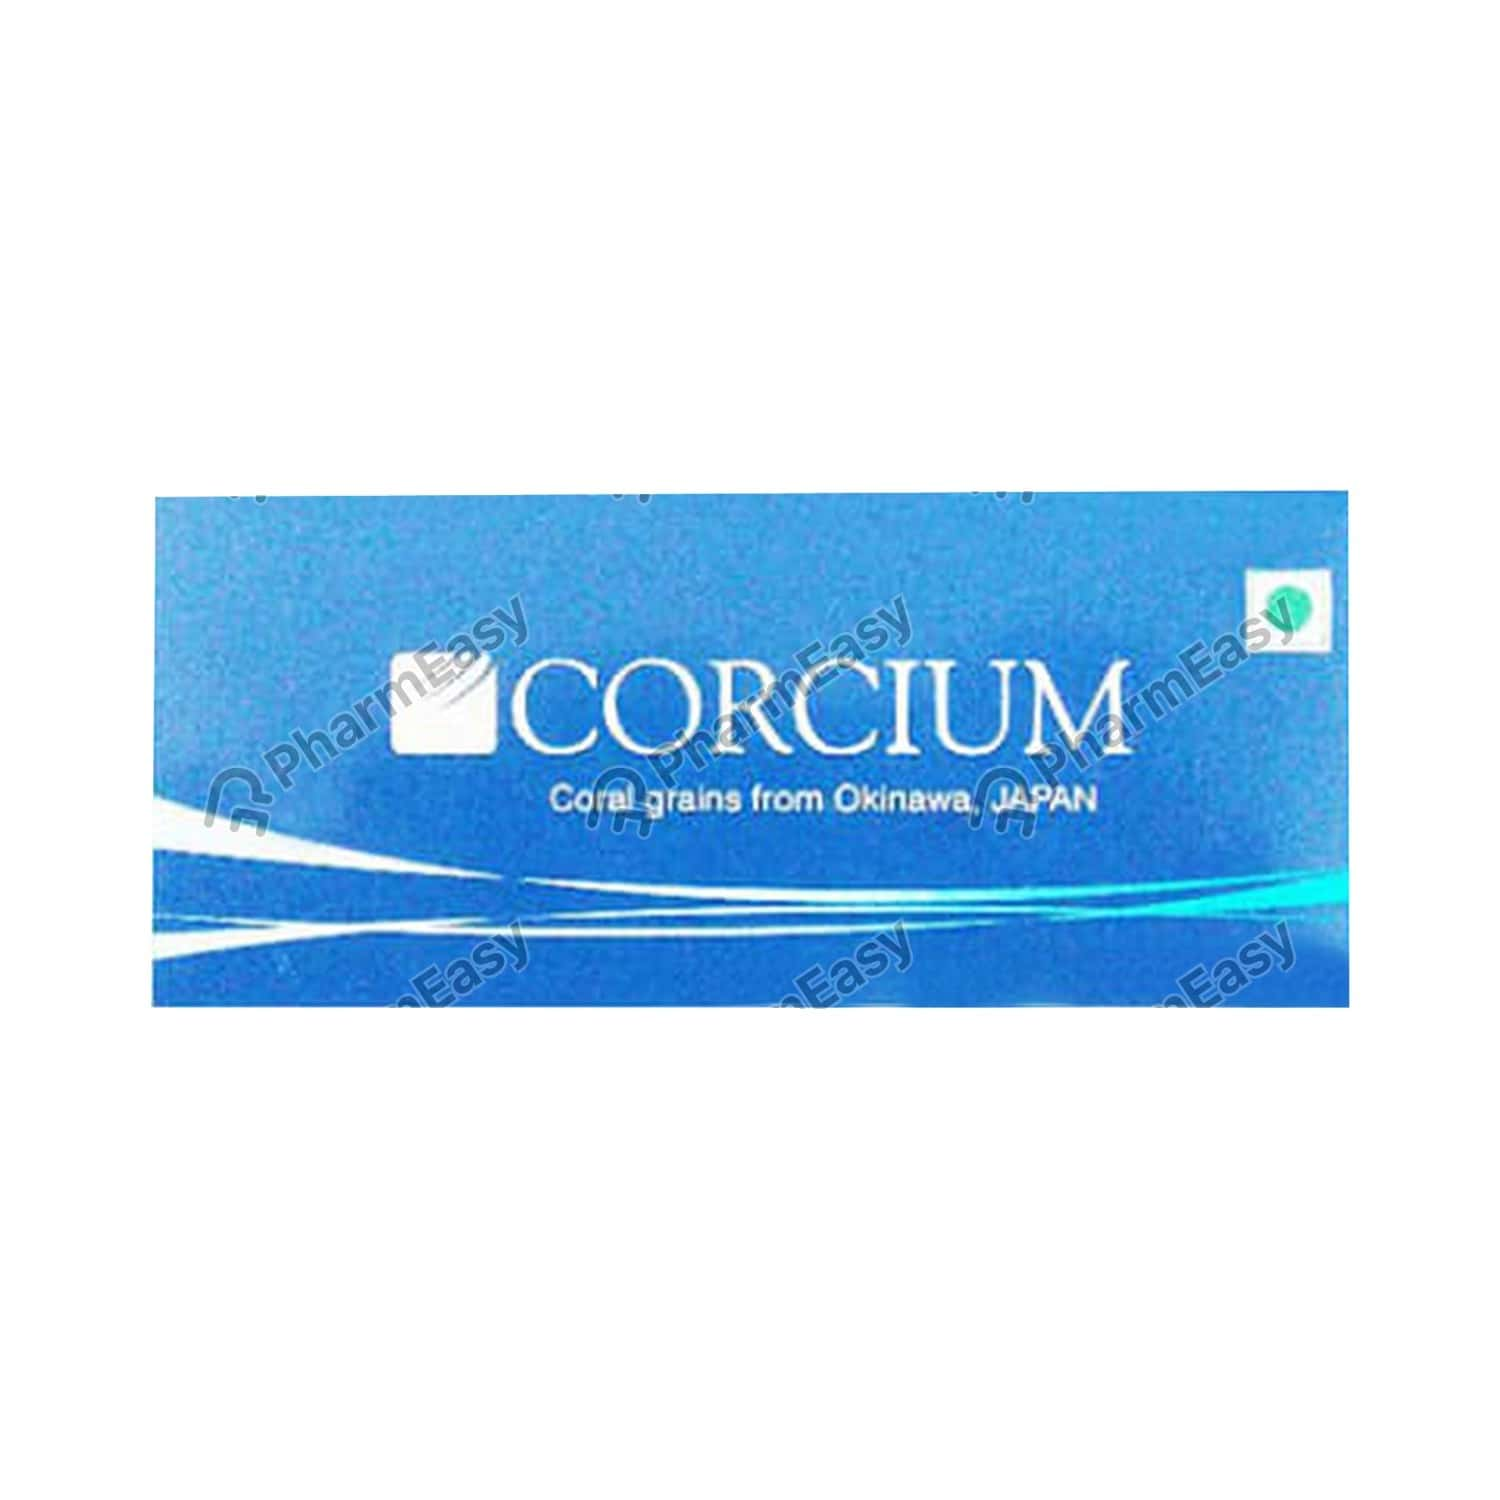 Corcium 225mg Strip Of 10 Tablets